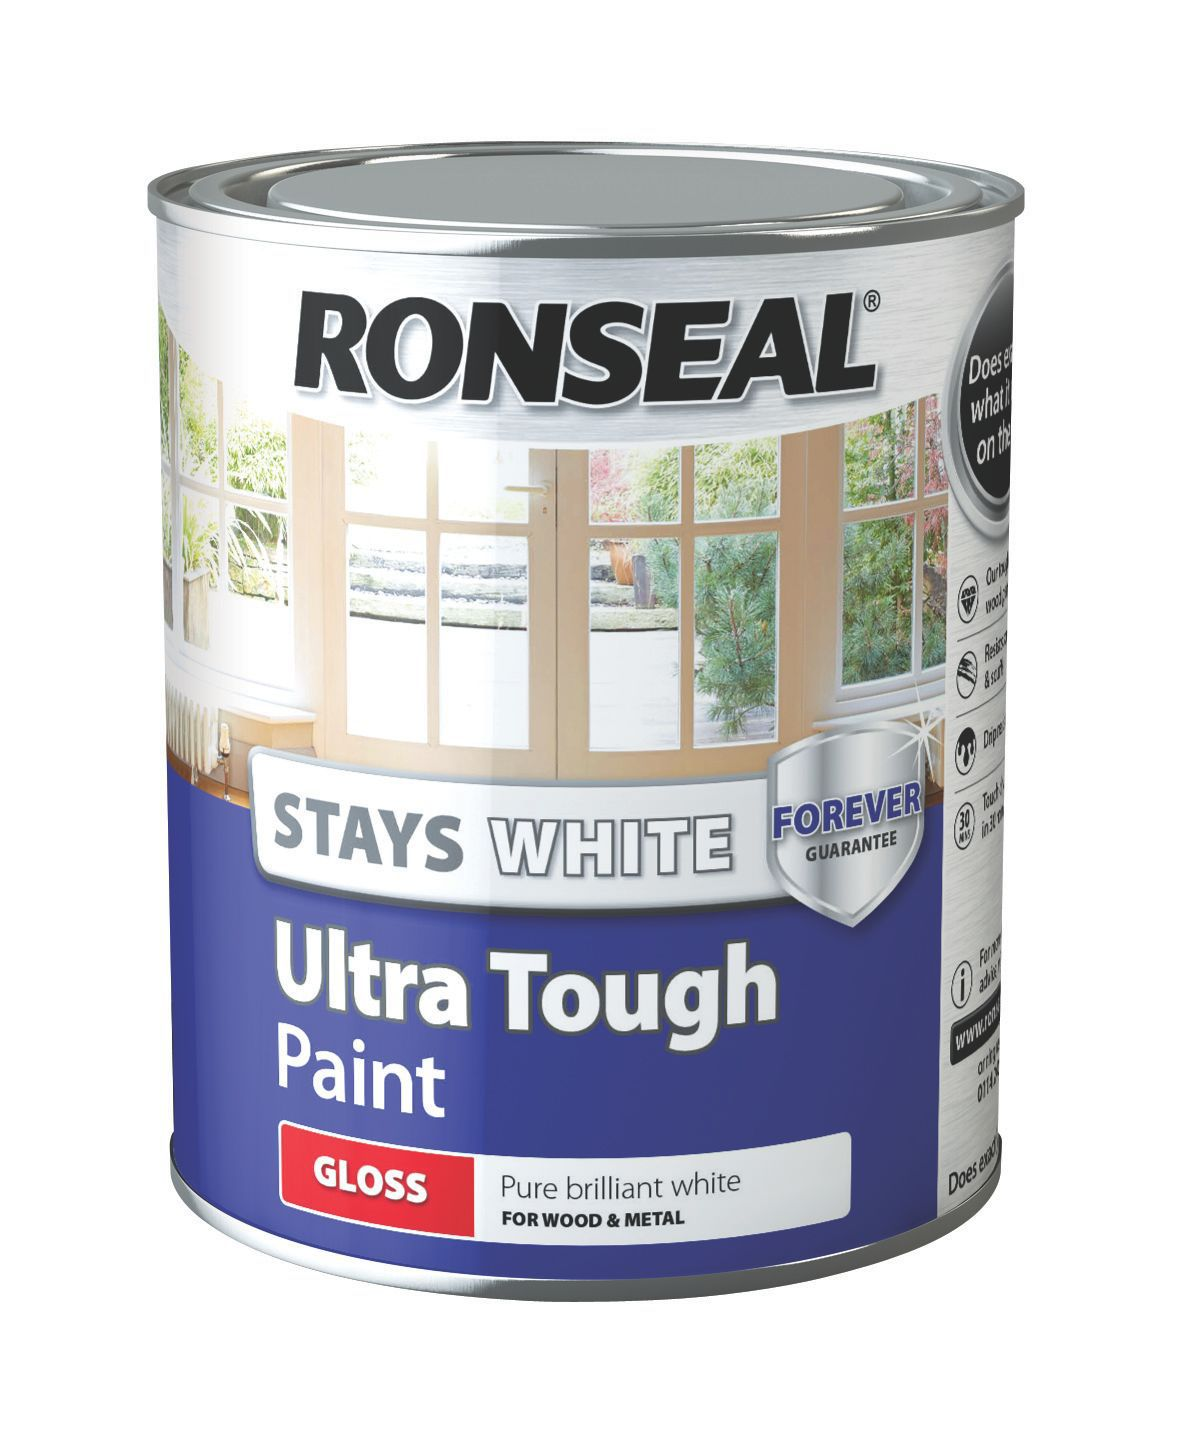 Ronseal Interior Exterior Pure Brilliant White Gloss Wood Metal Paint 750ml Departments